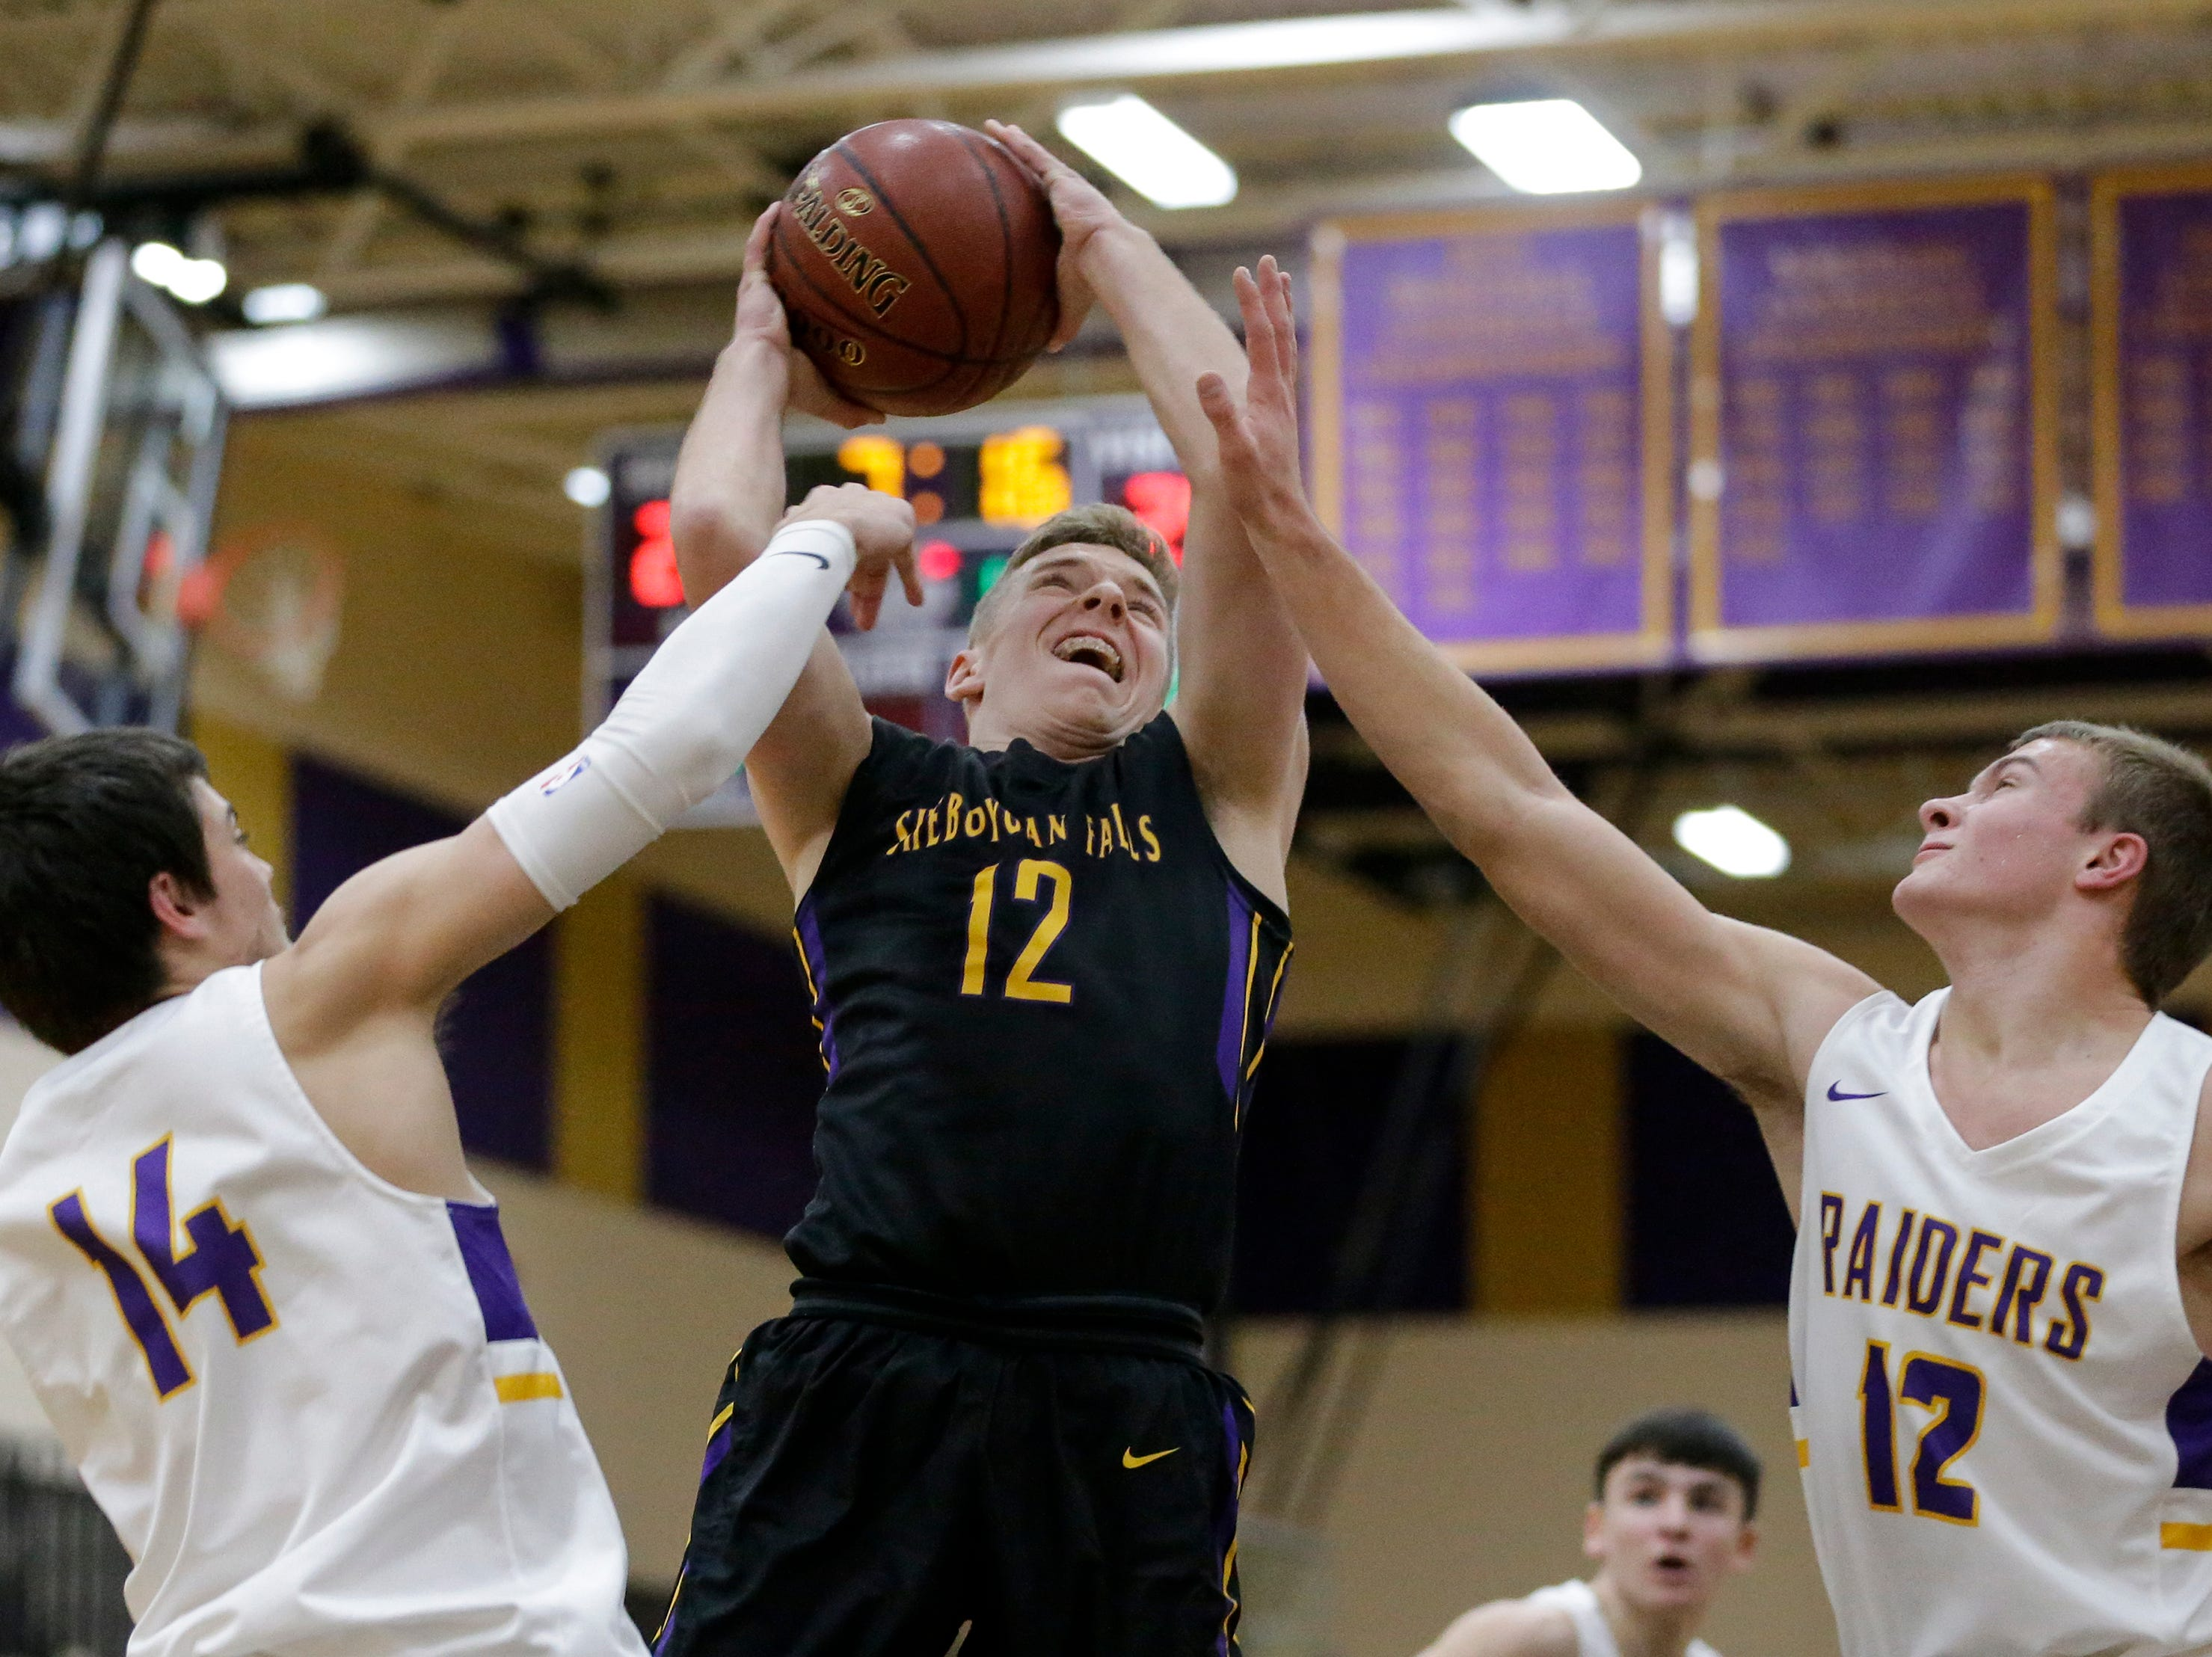 Sheboygan Falls' Langdon Thiel puts up a shot against Two Rivers during an Eastern Wisconsin Conference game at Two Rivers High School Tuesday, December 4, 2018, in Two Rivers, Wis. Joshua Clark/USA TODAY NETWORK-Wisconsin